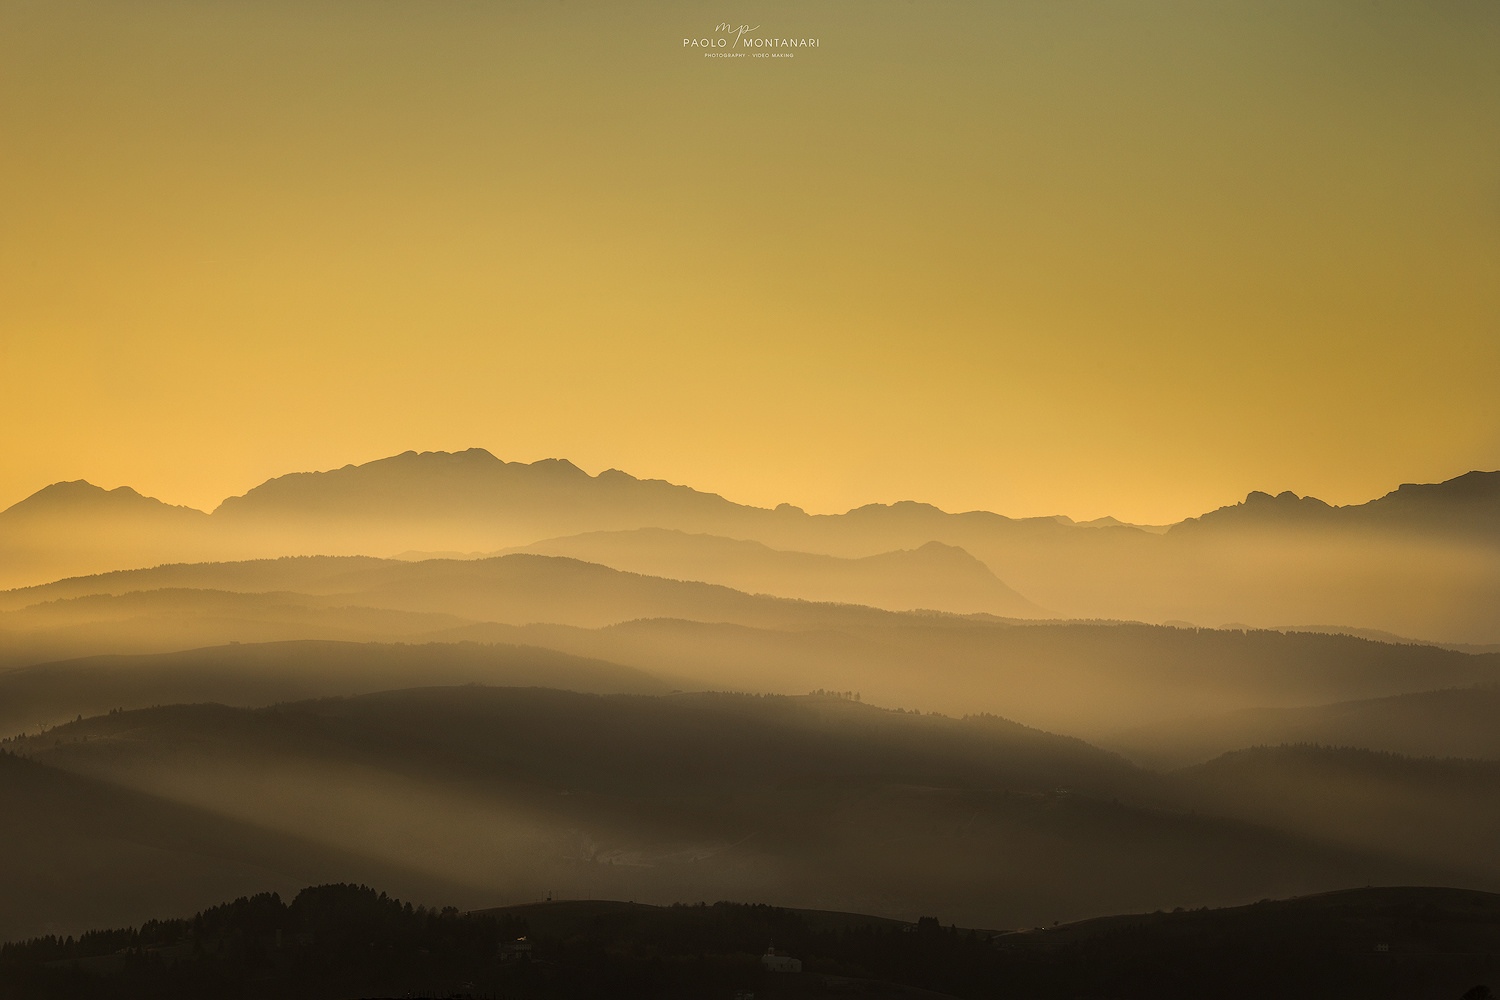 Ray of Light by Paolo Montanari